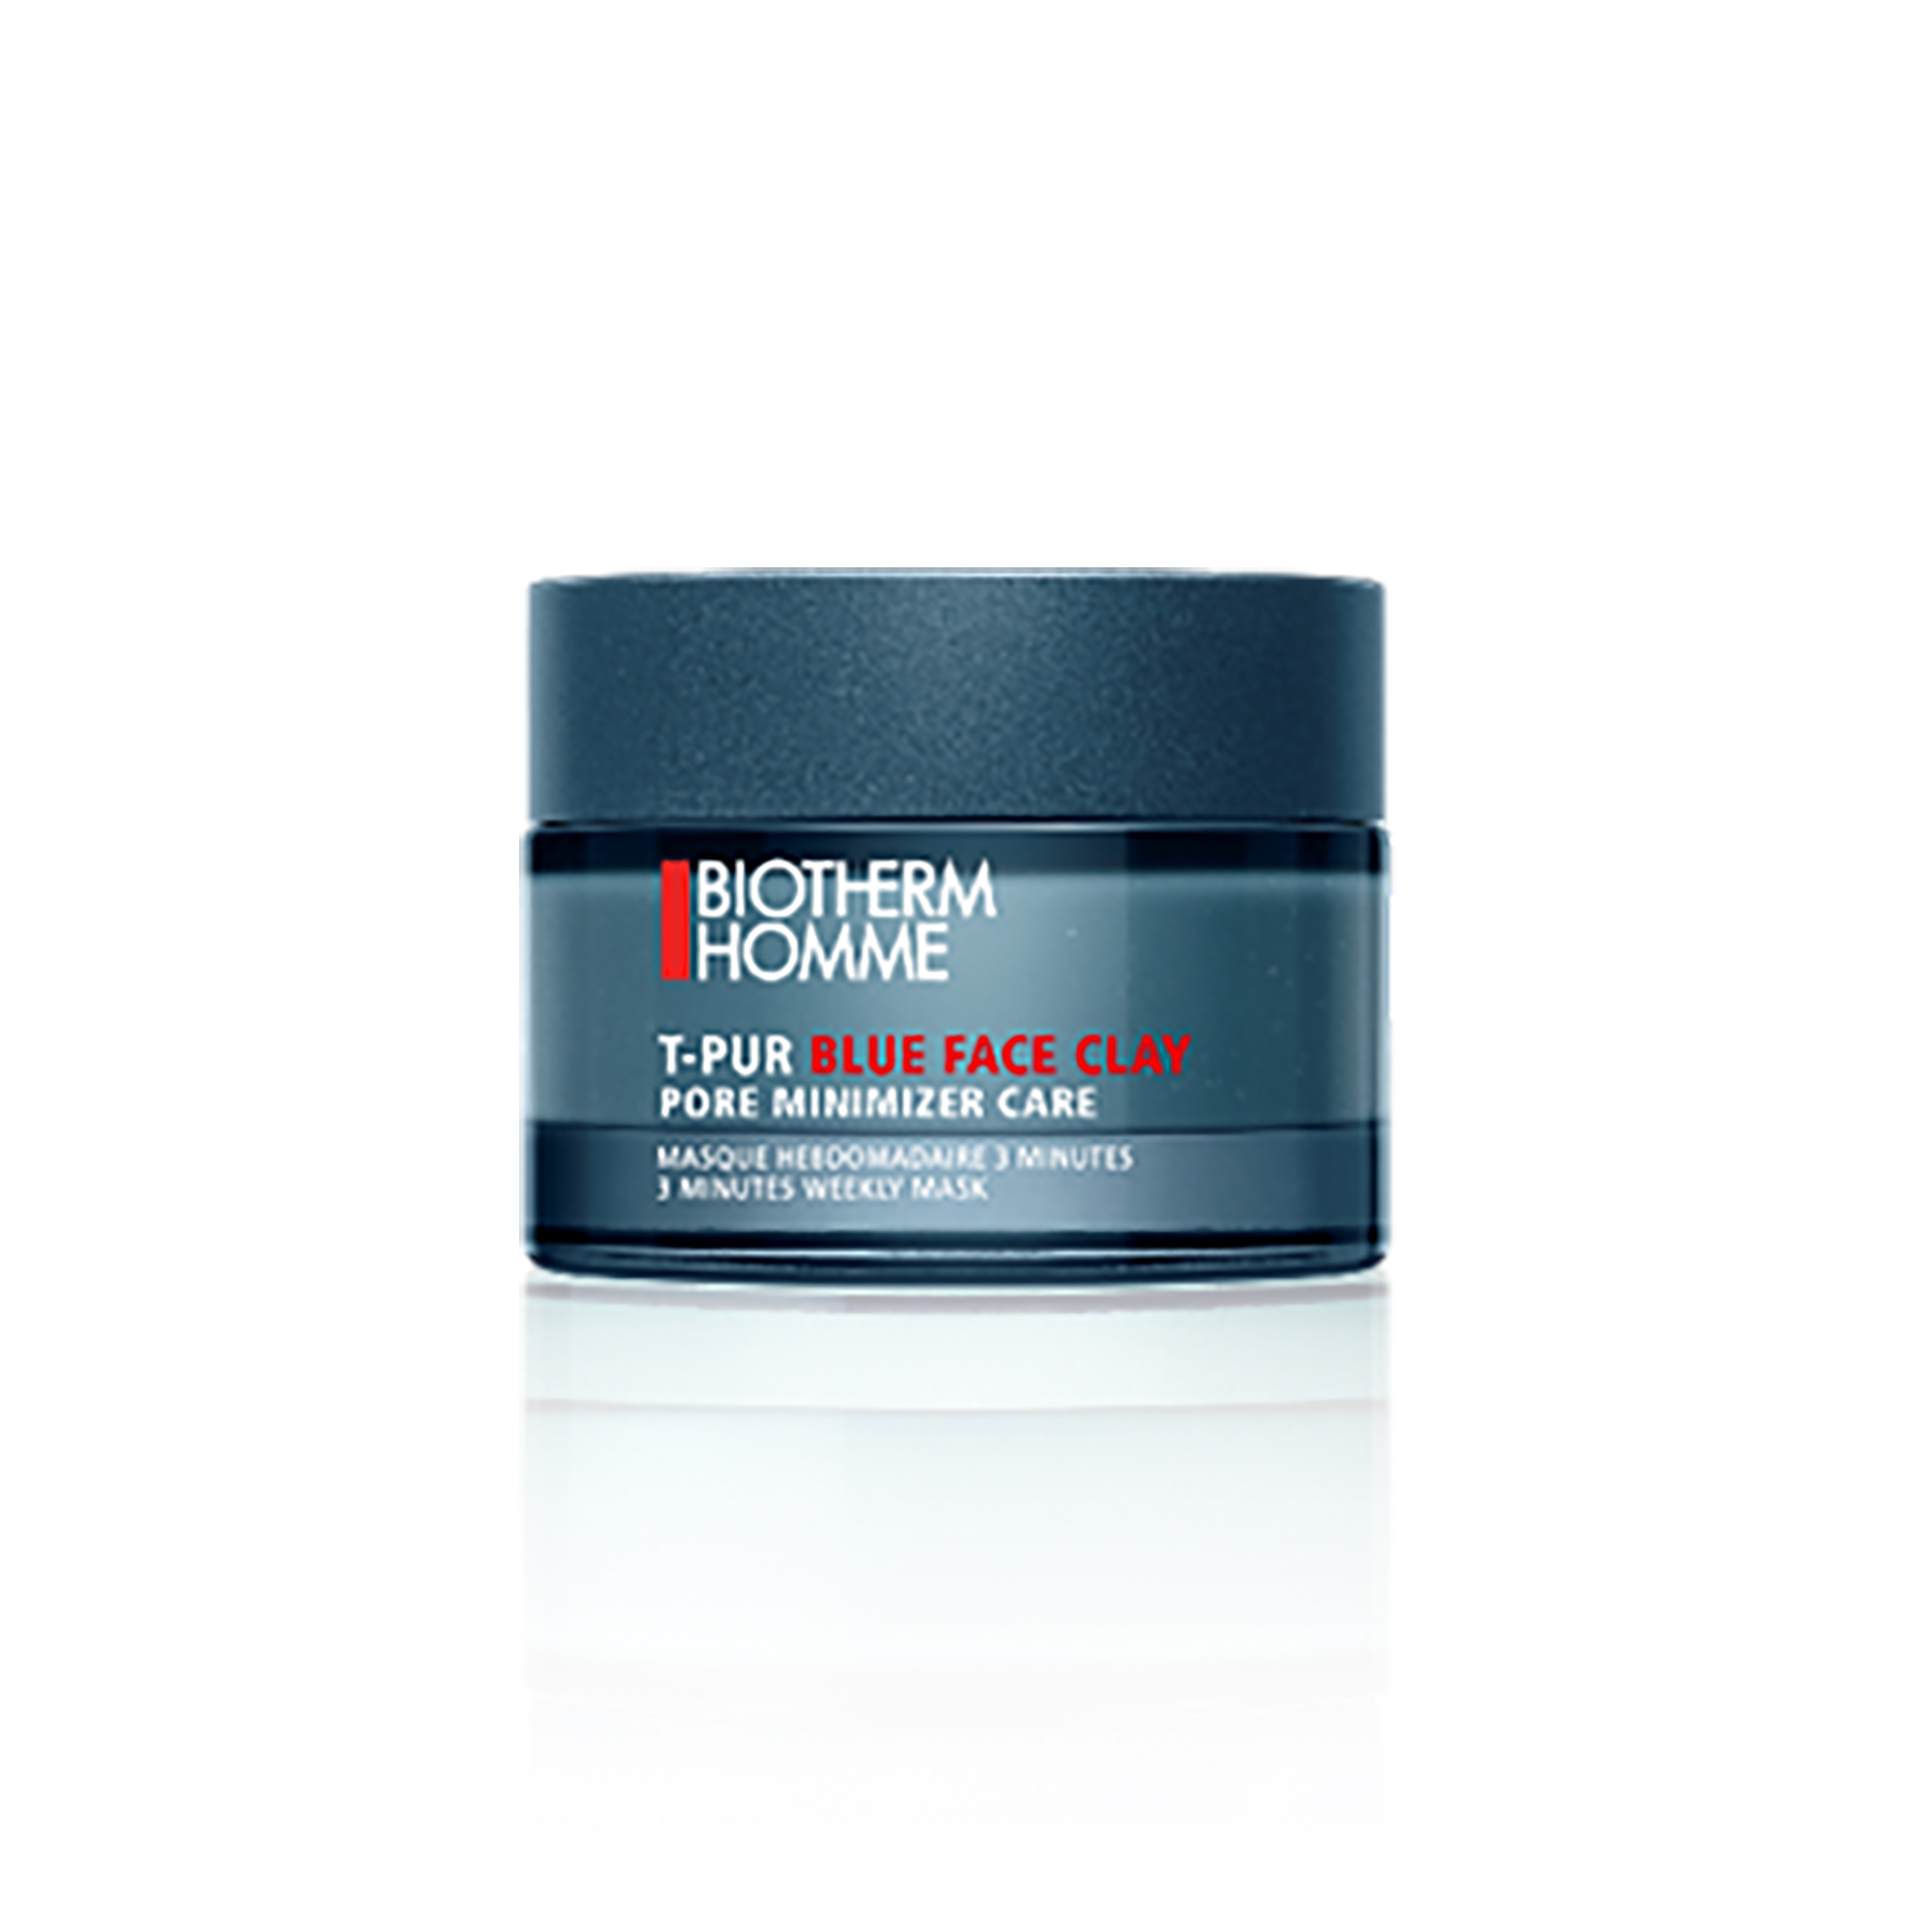 Biotherm Homme T-Pur Blue Face Clay Mask, 50 ml